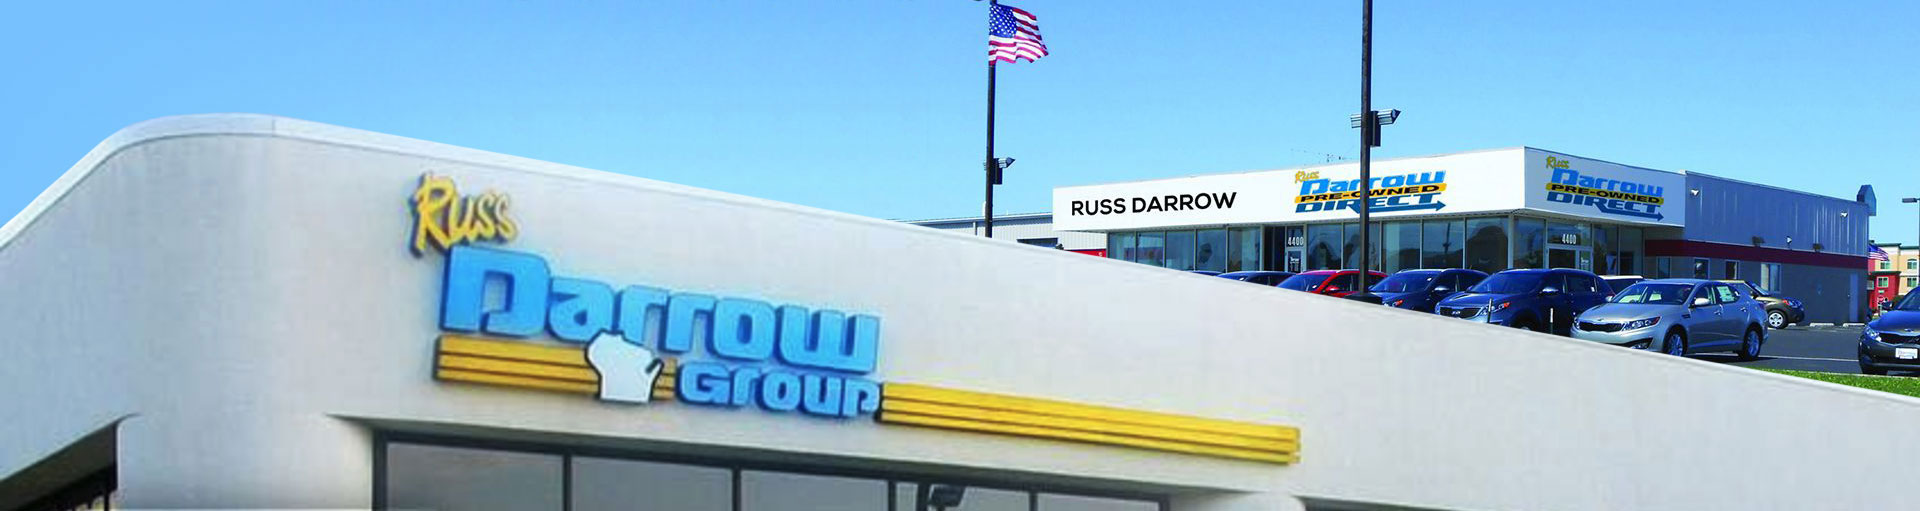 Russ Darrow Direct Service Department